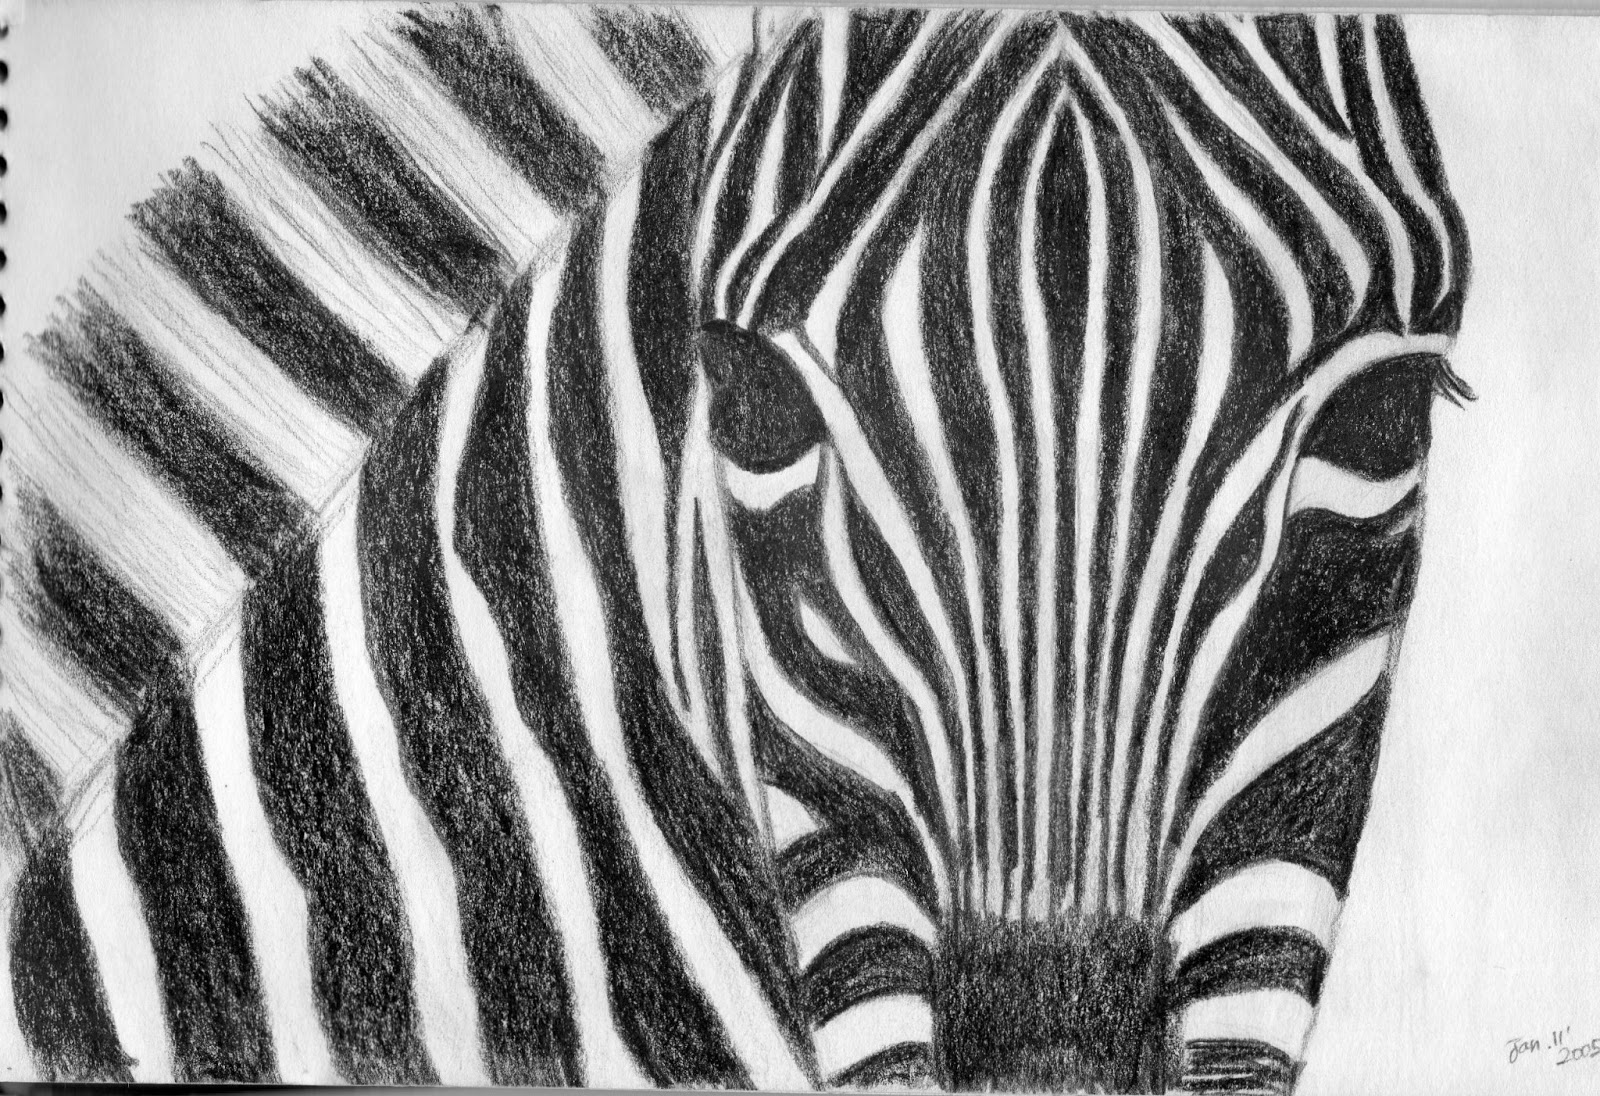 zebra pencil drawing - photo #17